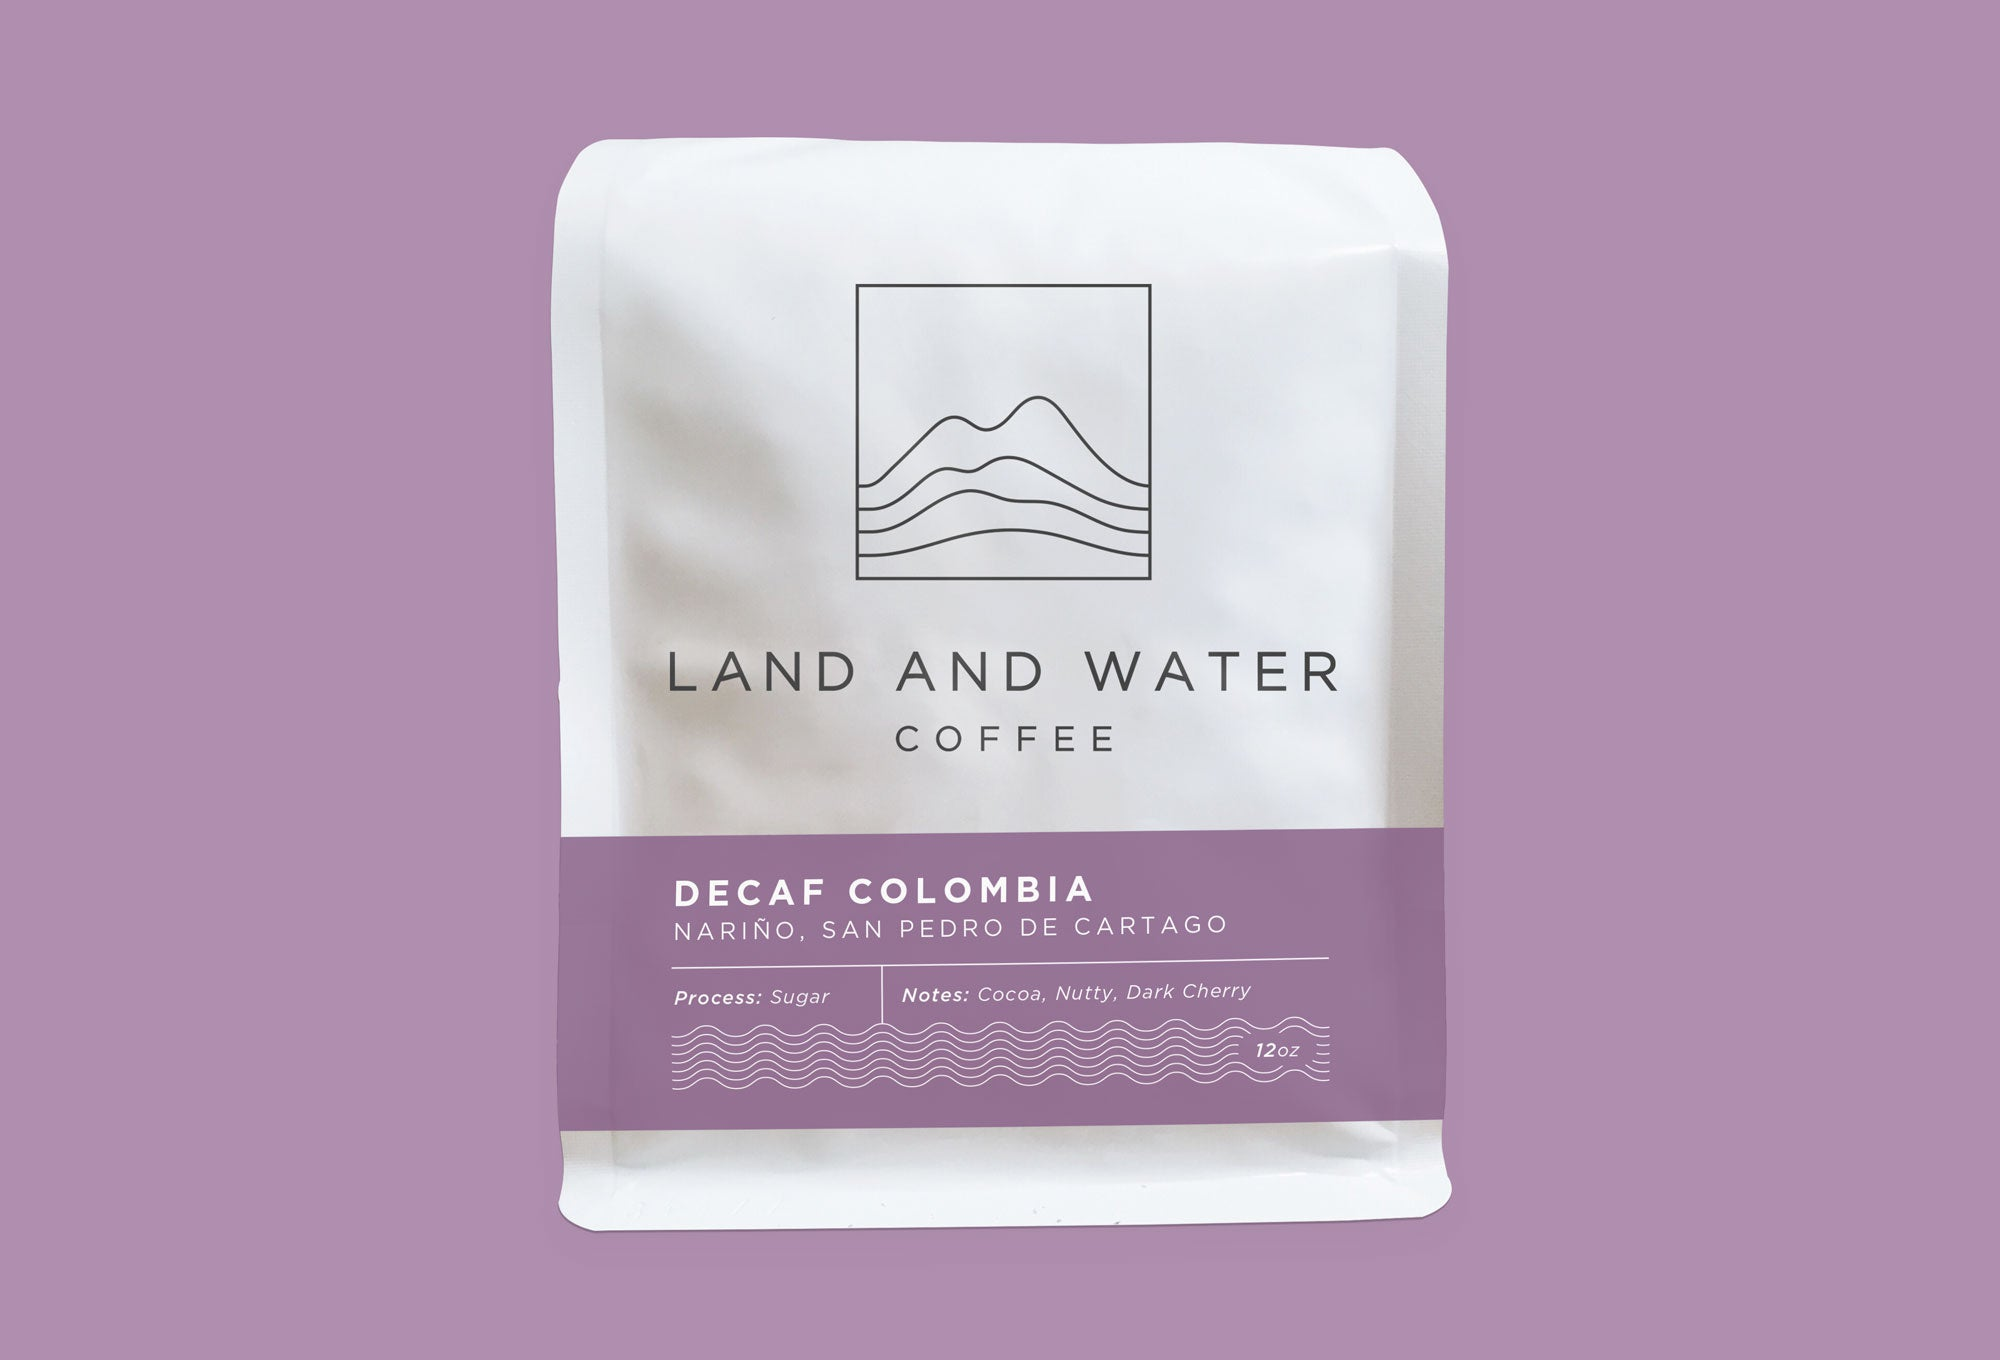 Land and Water Coffee Sugar Decaf Colombia, white bag with purple label and purple background